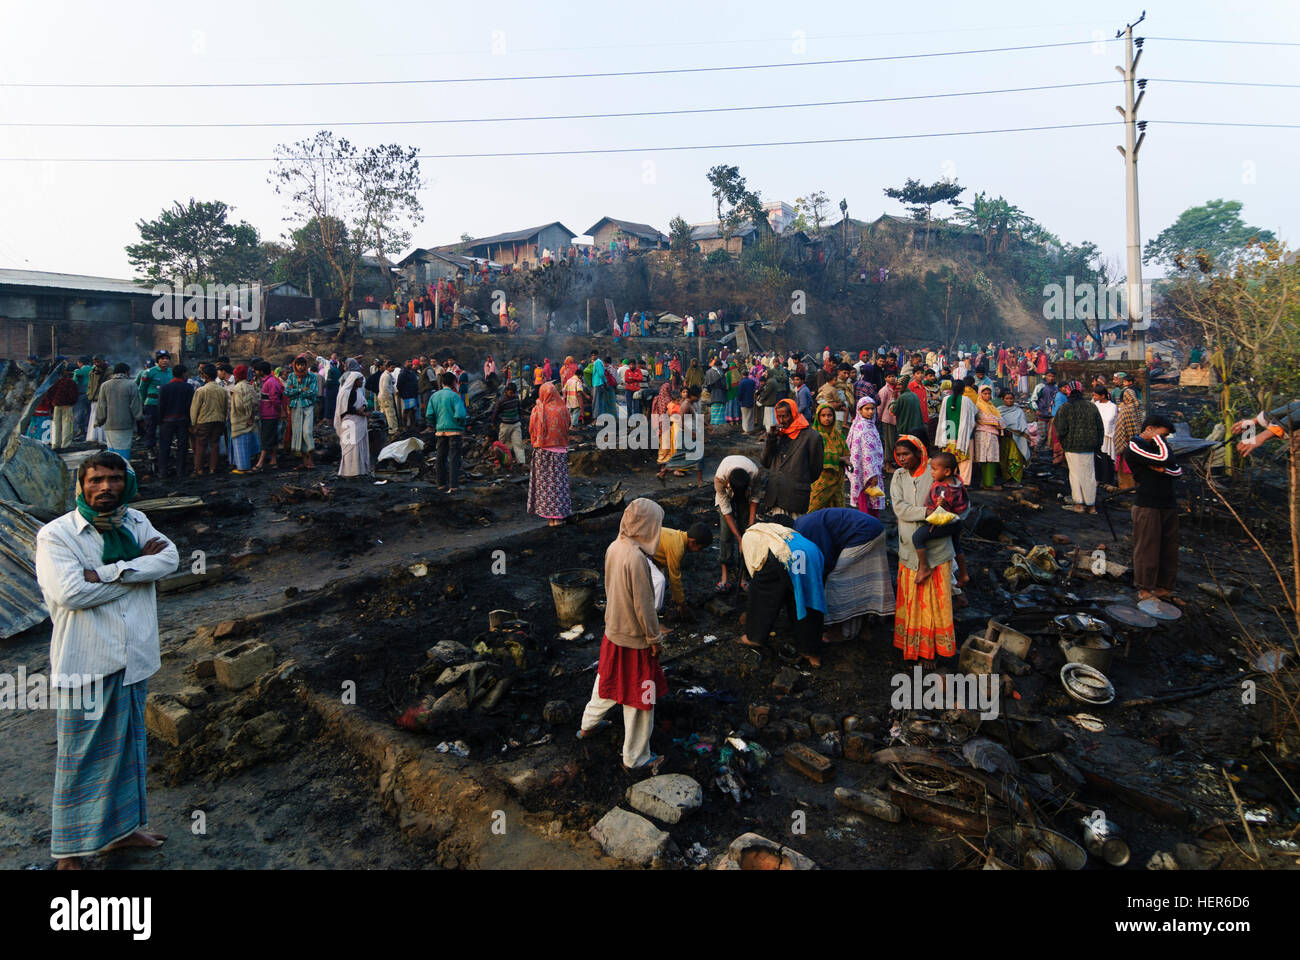 Chittagong: burned down slum, because of carelessness in cooking, Chittagong Division, Bangladesh - Stock Image